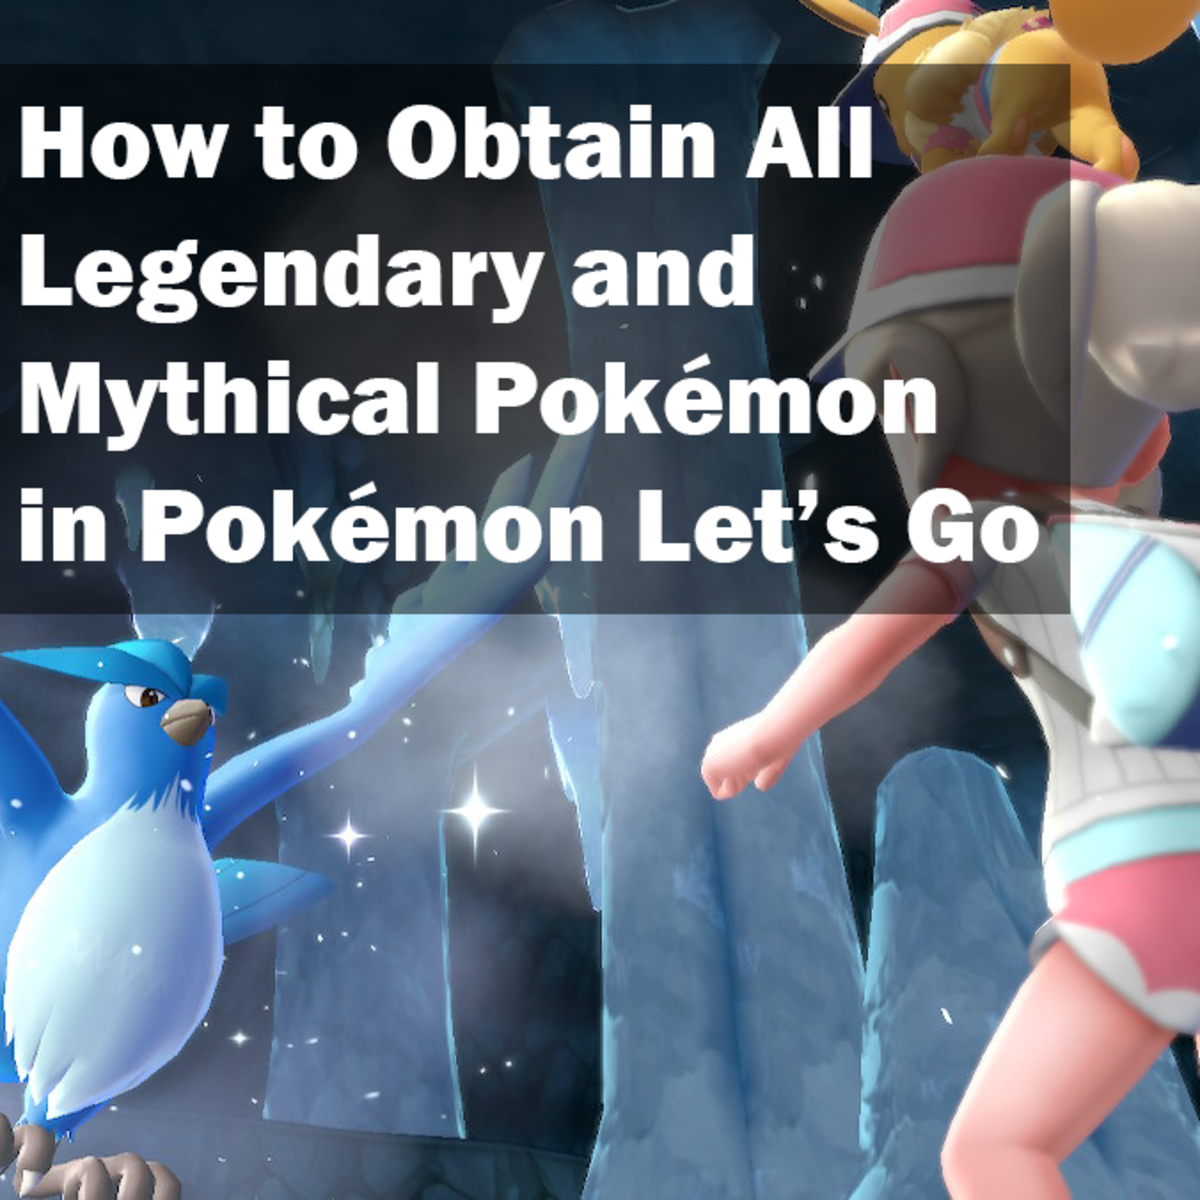 How to Obtain All Legendary and Mythical Pokémon in